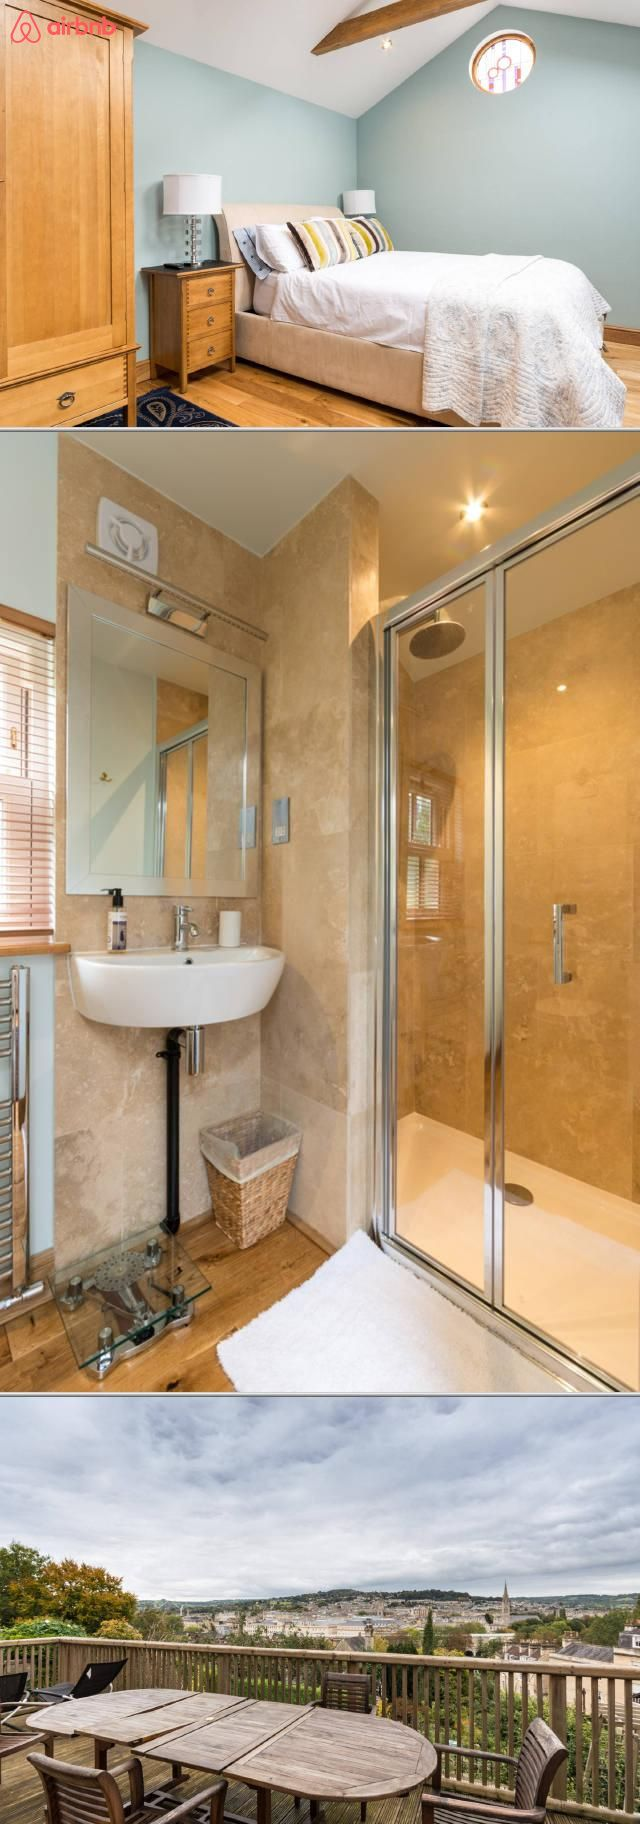 Detached studio near the Bath city centre. You'll have parking on-site, but why bother when you can enjoy a five minutes' walk to the Bath city centre, the train station, and Widcombe high street with its pubs, cafes, and shops.